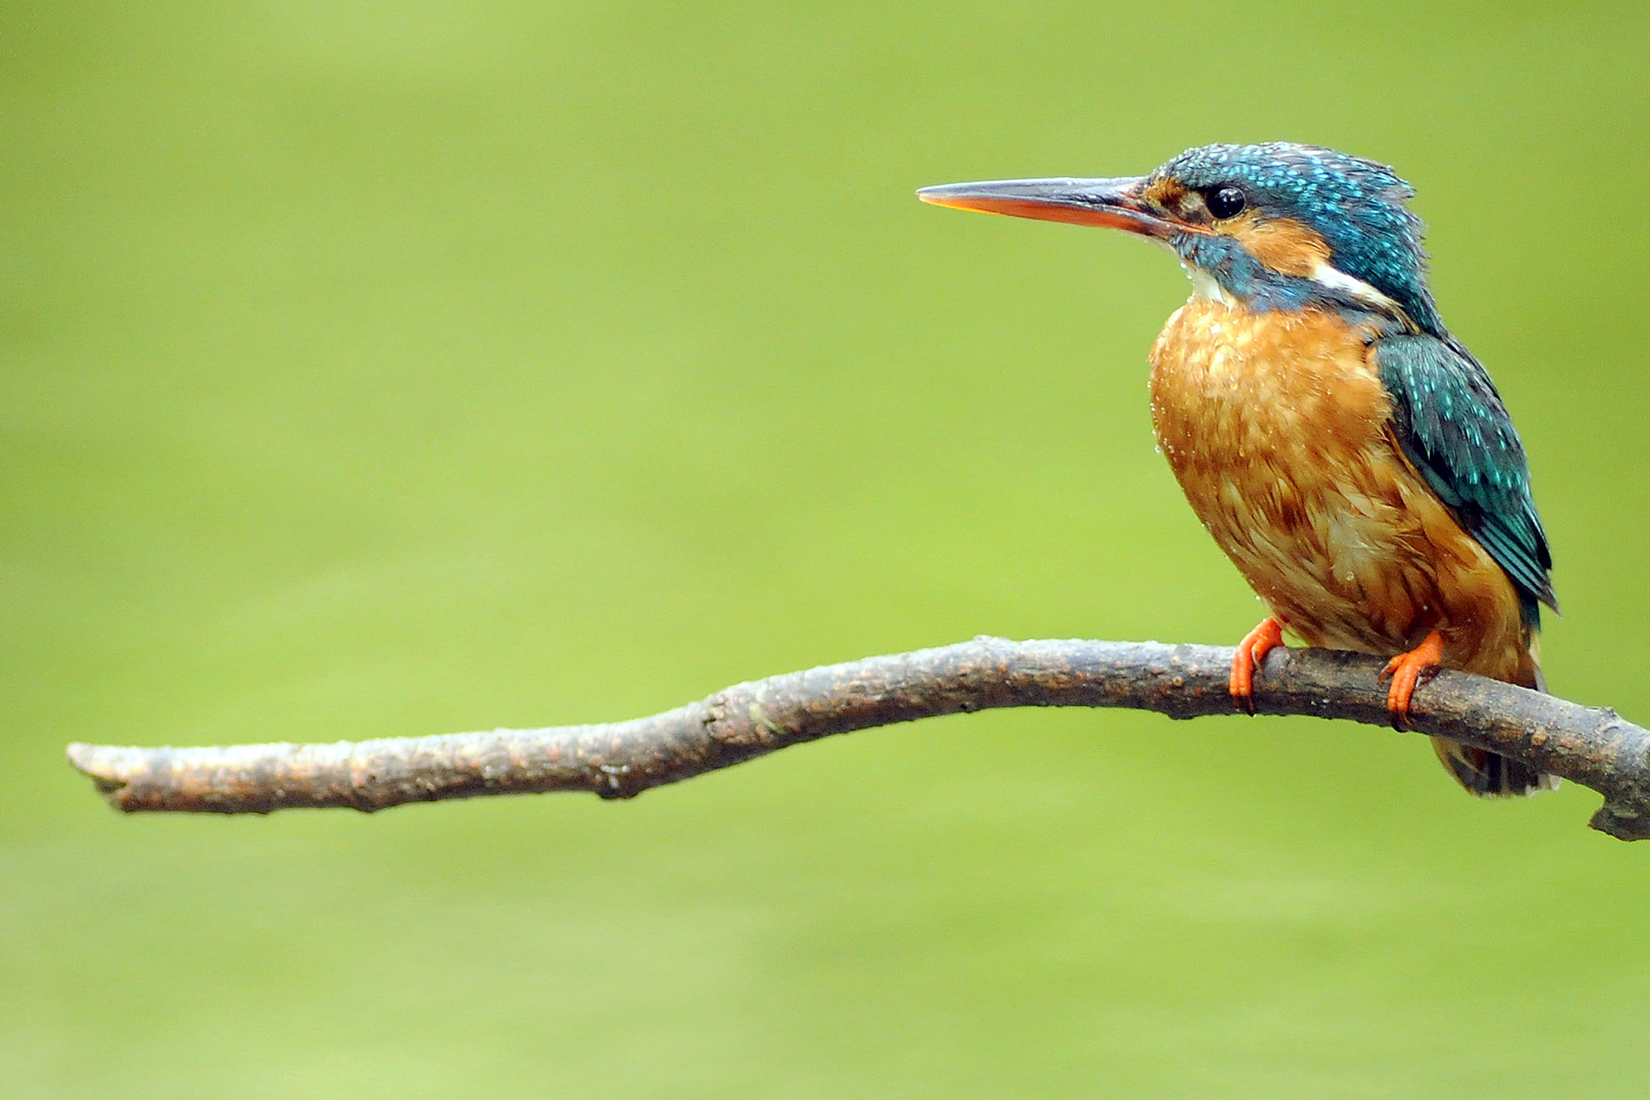 kingfisher-perched-on-branch-looking-left